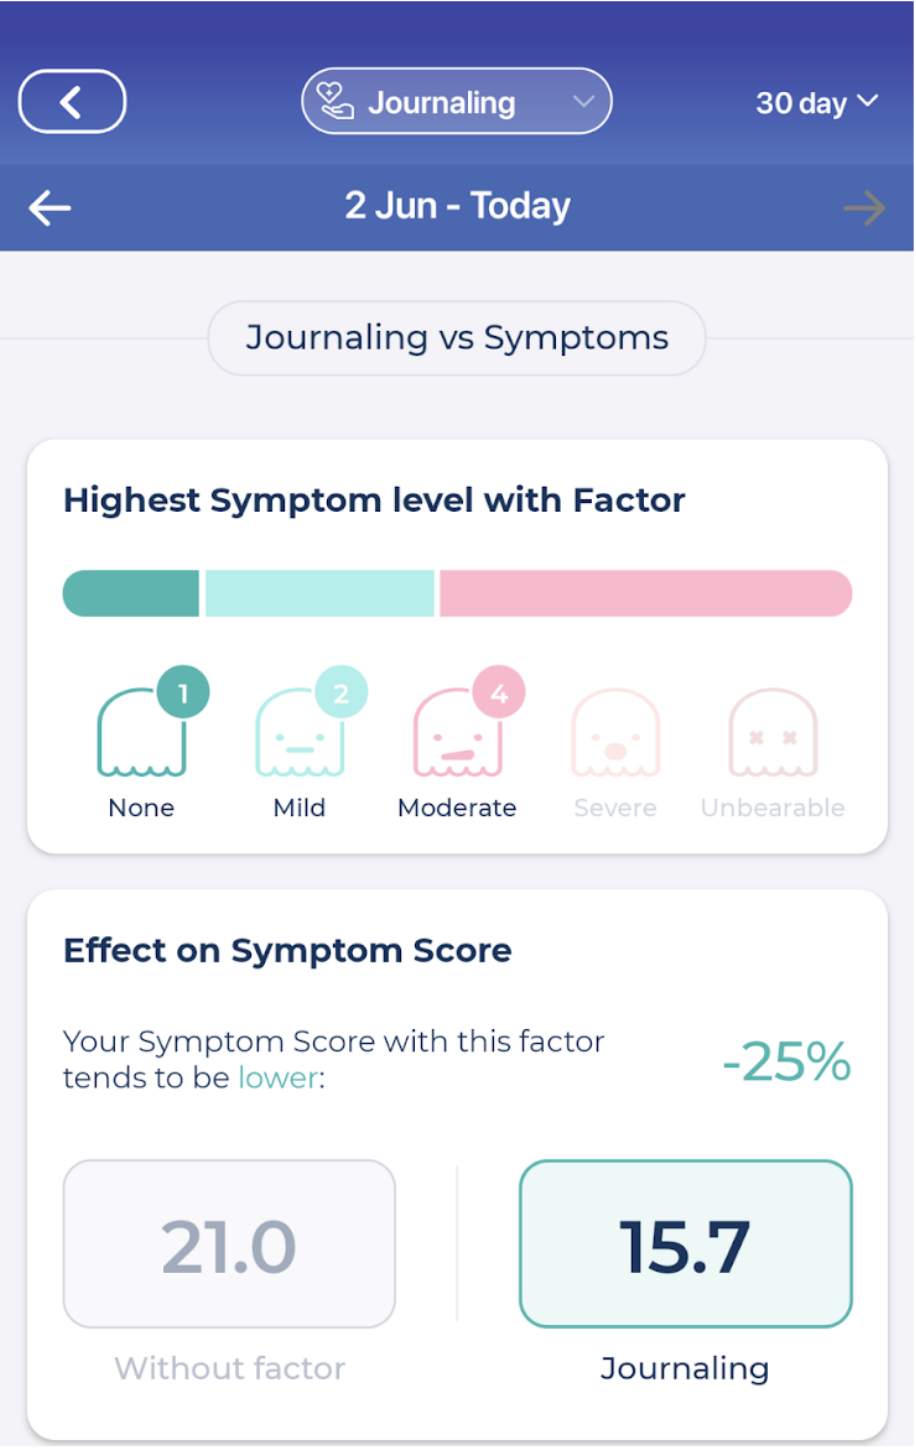 The overall effect of journaling on my health